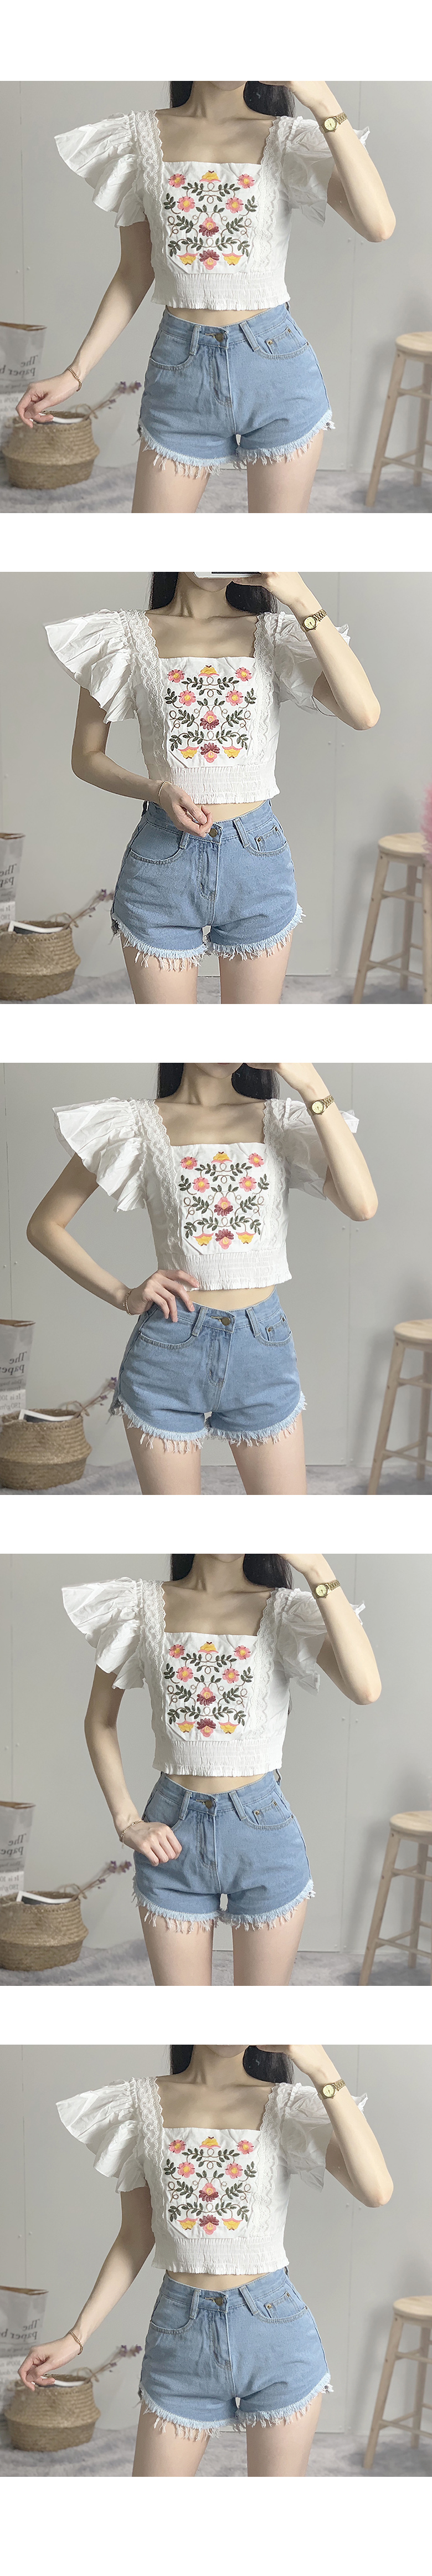 Square wing embroidery cropped blouse